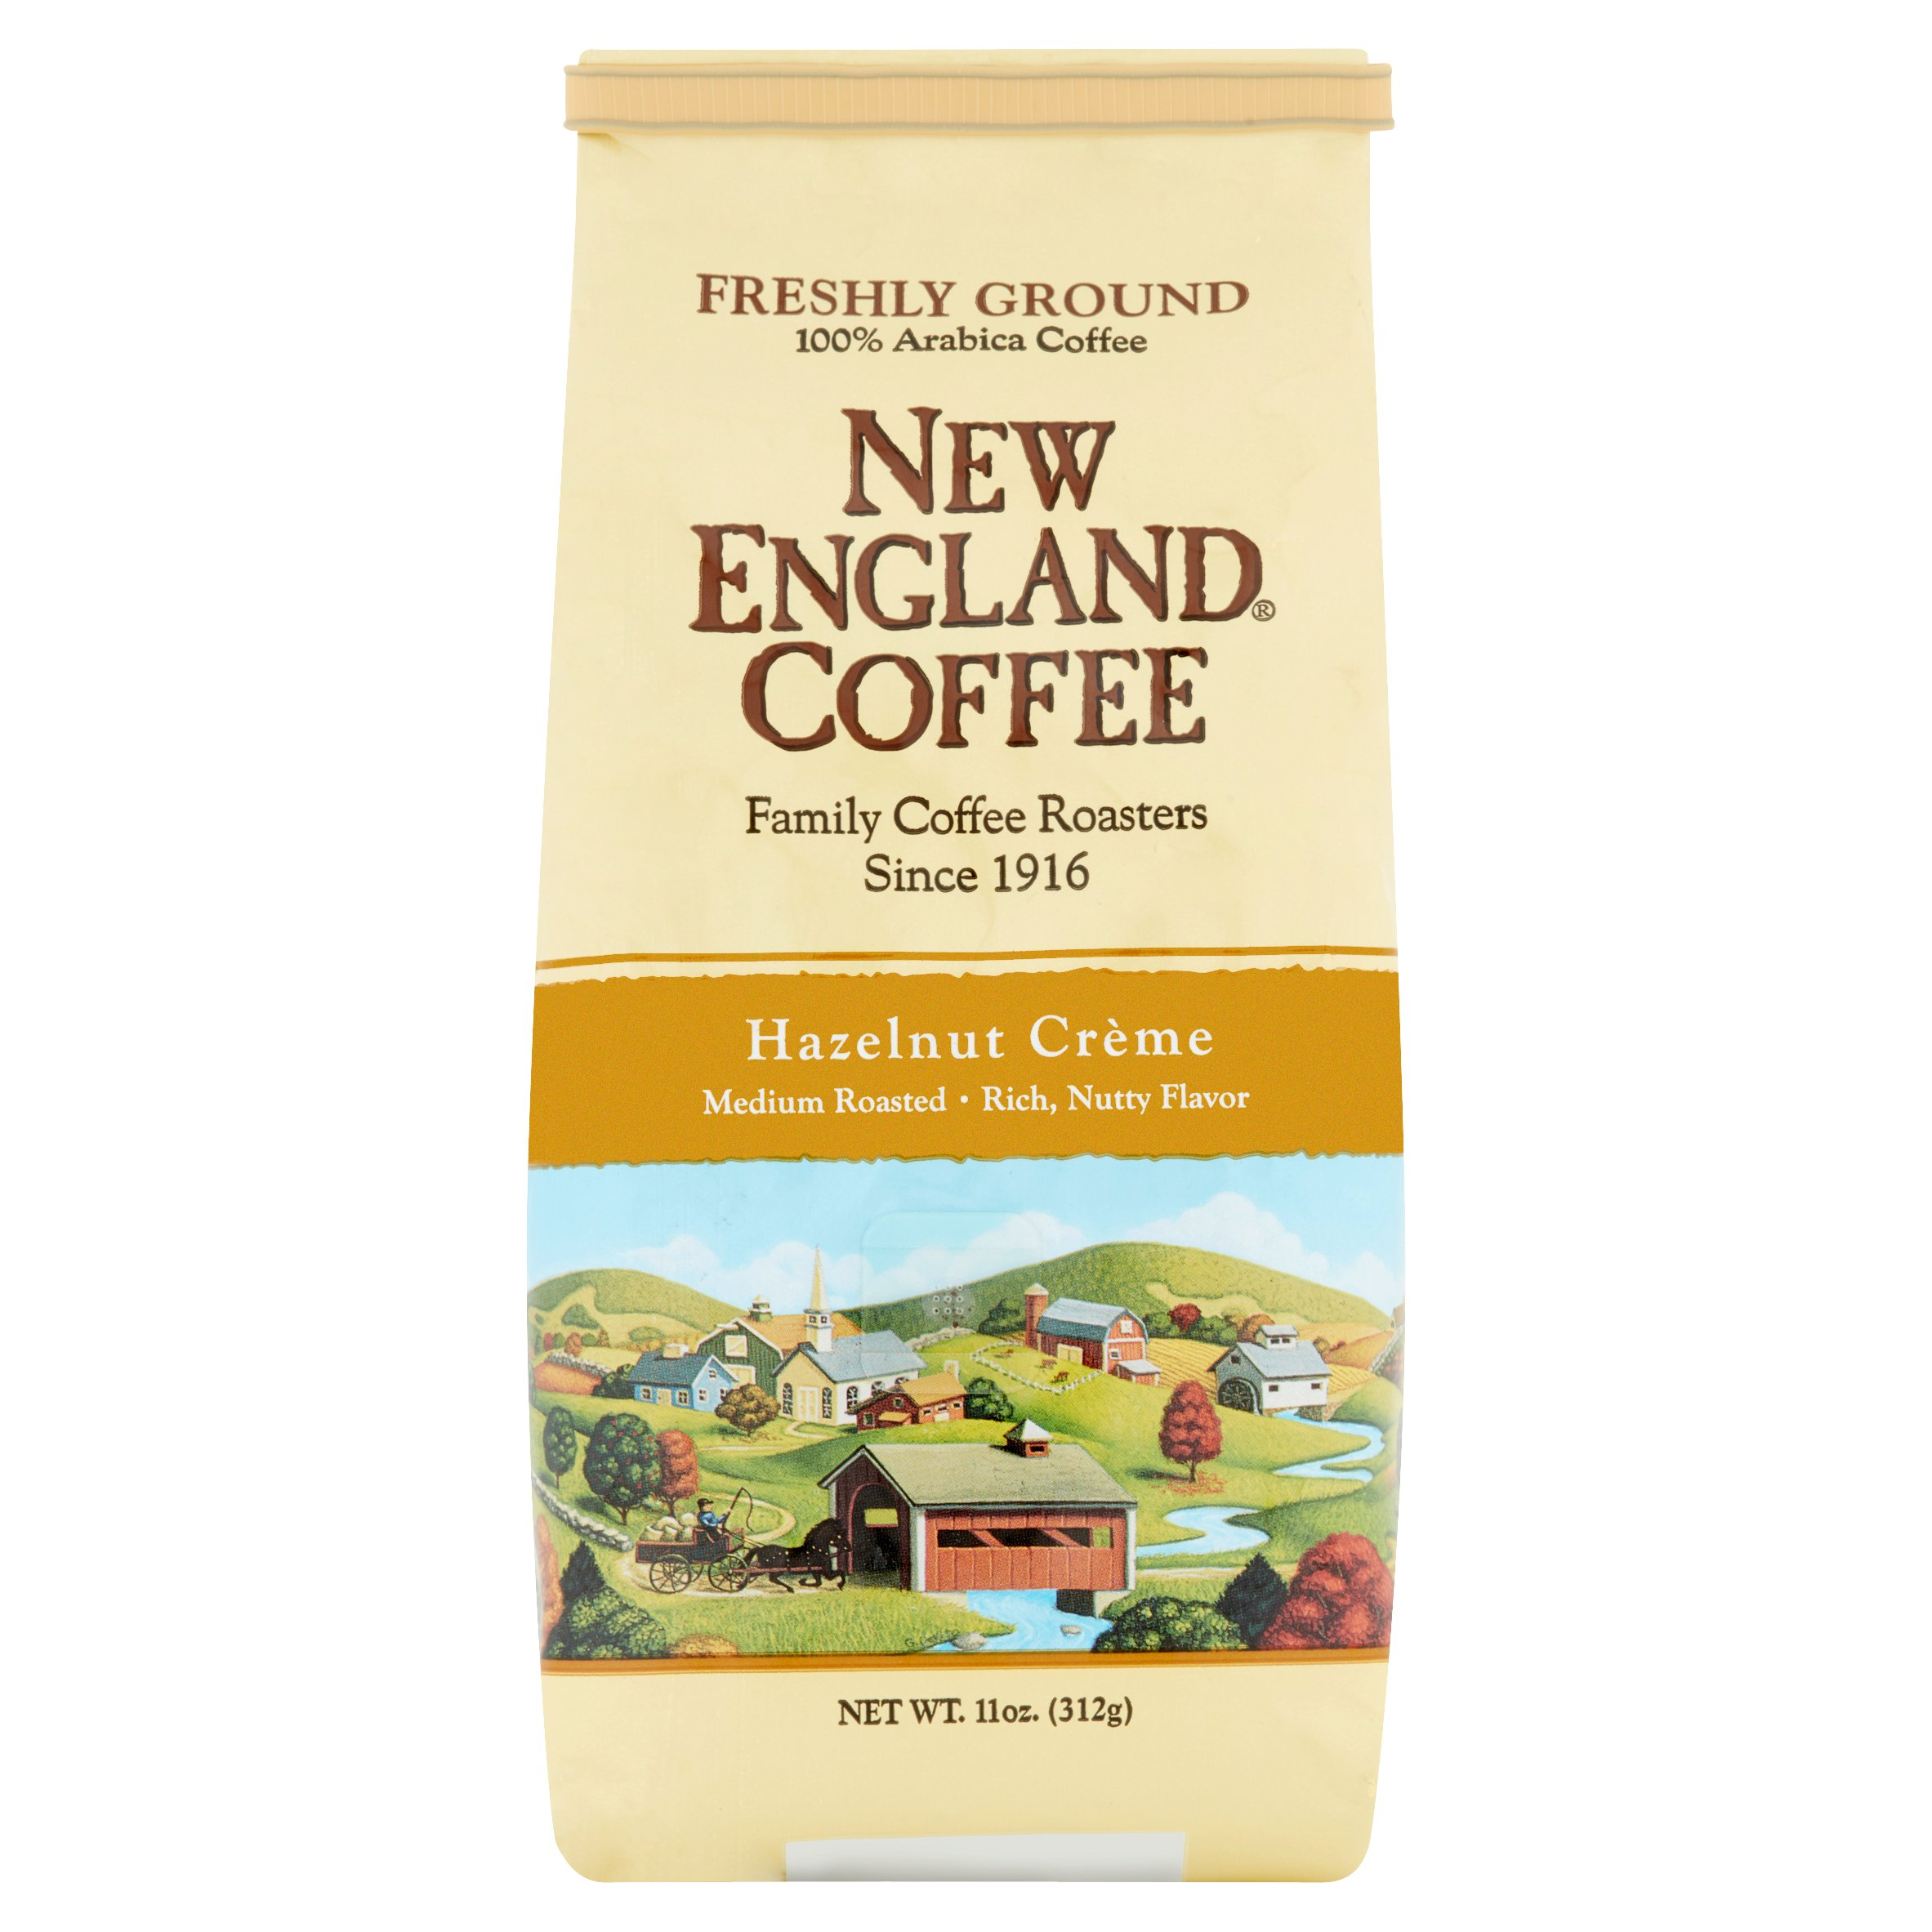 New England Coffee Hazelnut Crème 100% Arabica Coffee, 11 oz